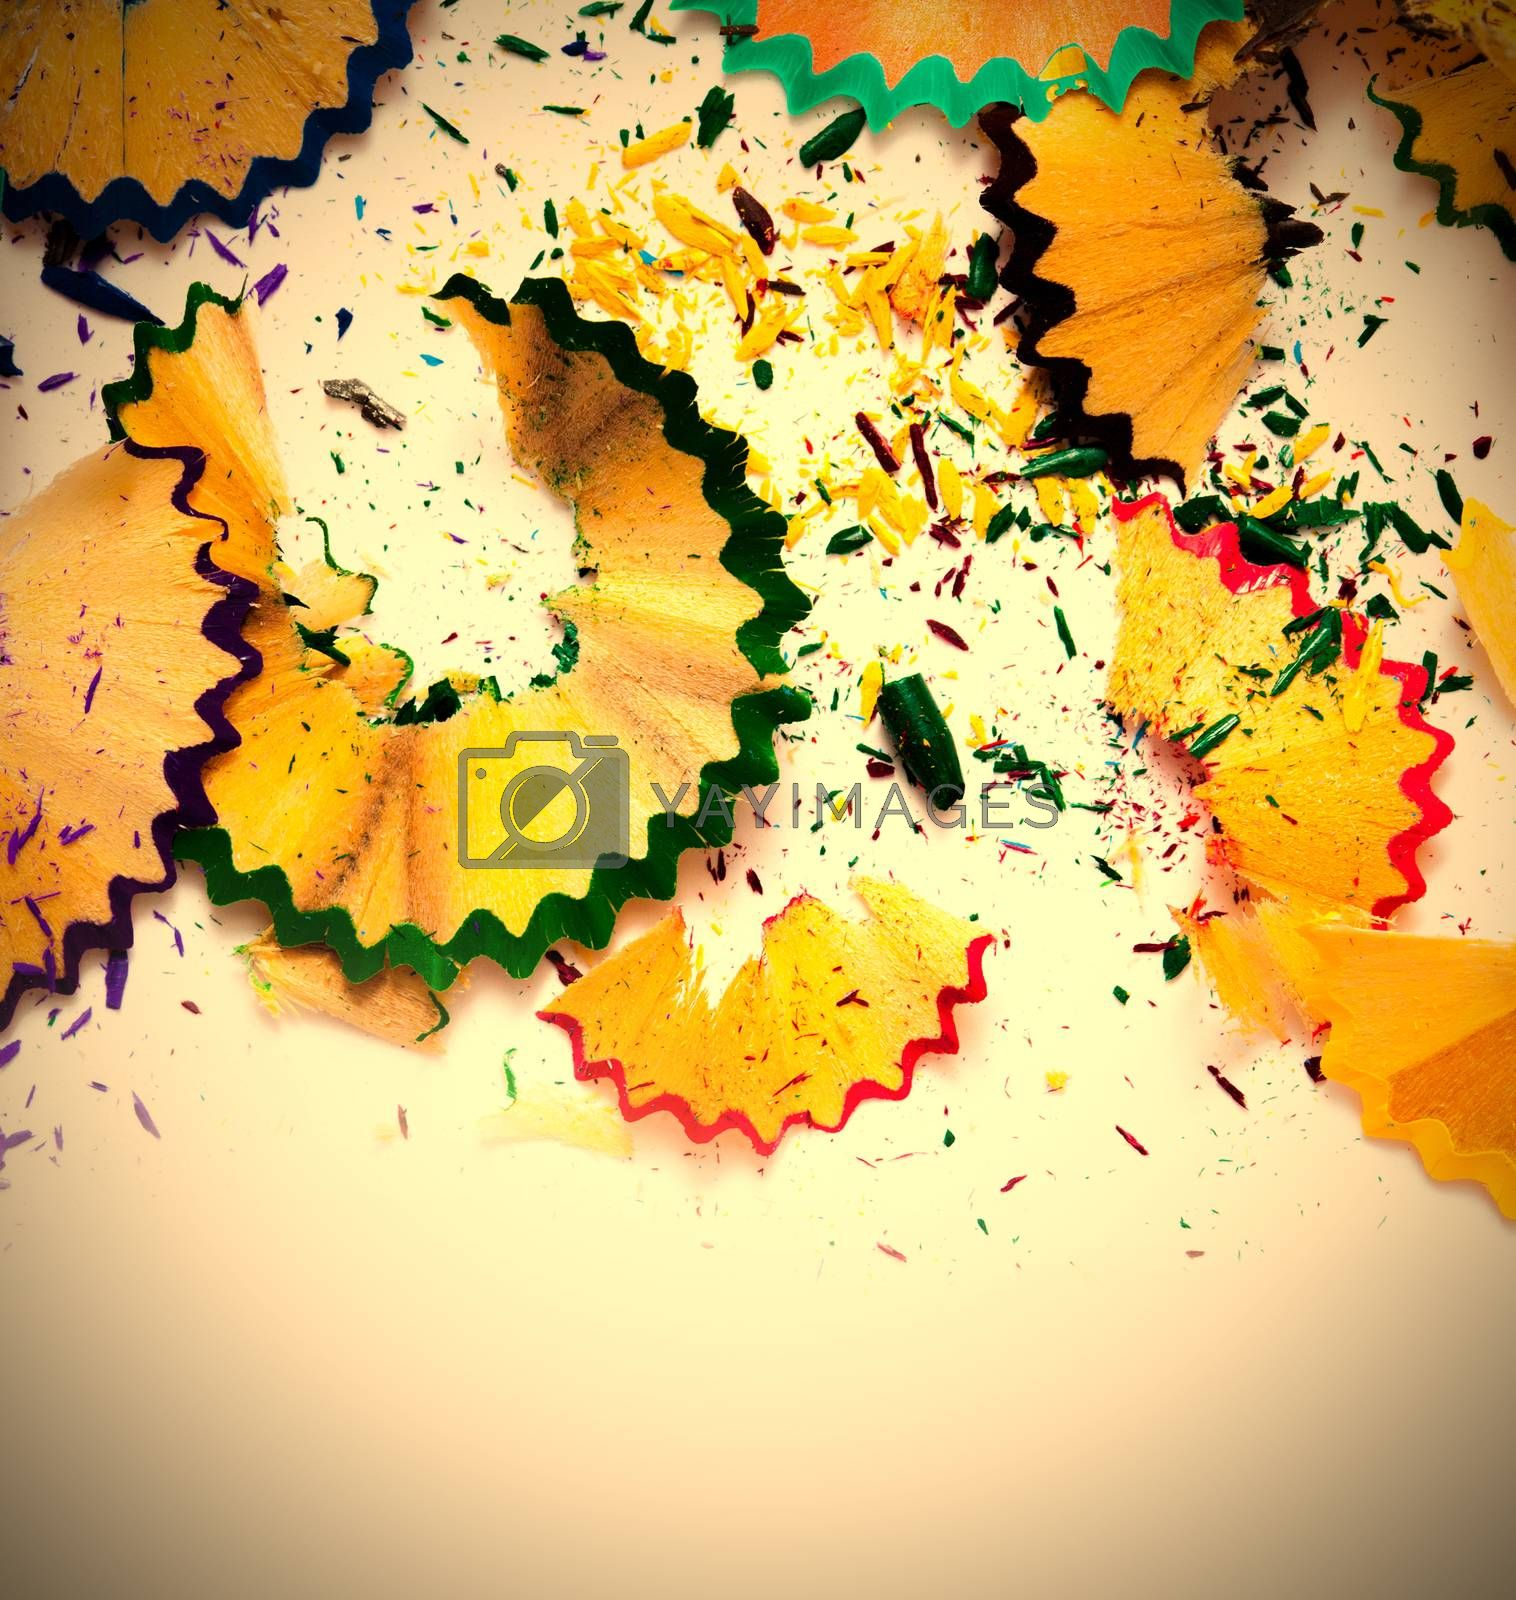 colored pencil shavings on white background with copy space. instagram image retro style